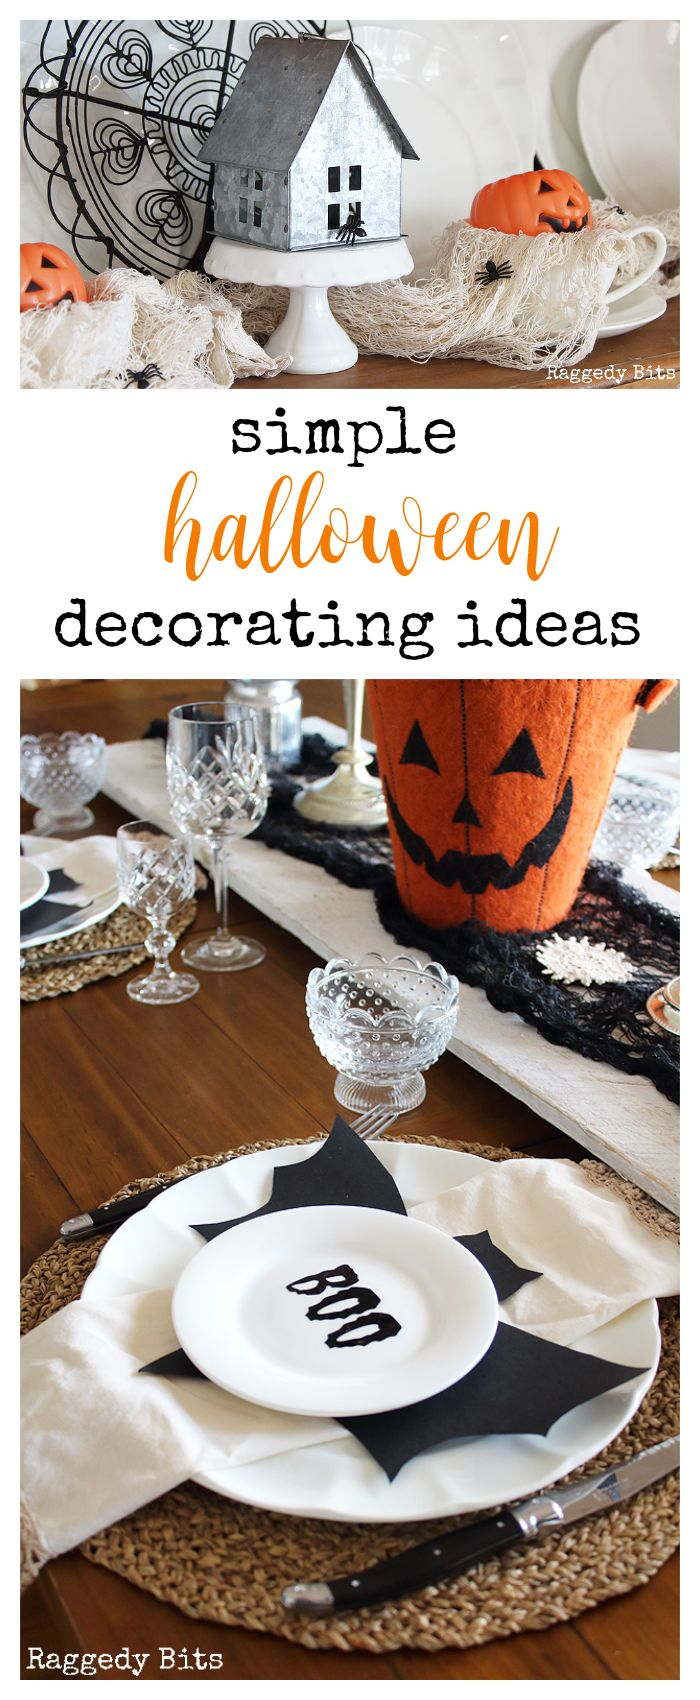 Sharing some fun simple ways to decorate for Halloween that won't break the budget | Simple Halloween Decorating Ideas | www.raggedy-bits.com #halloween #craft #decorating #ideas